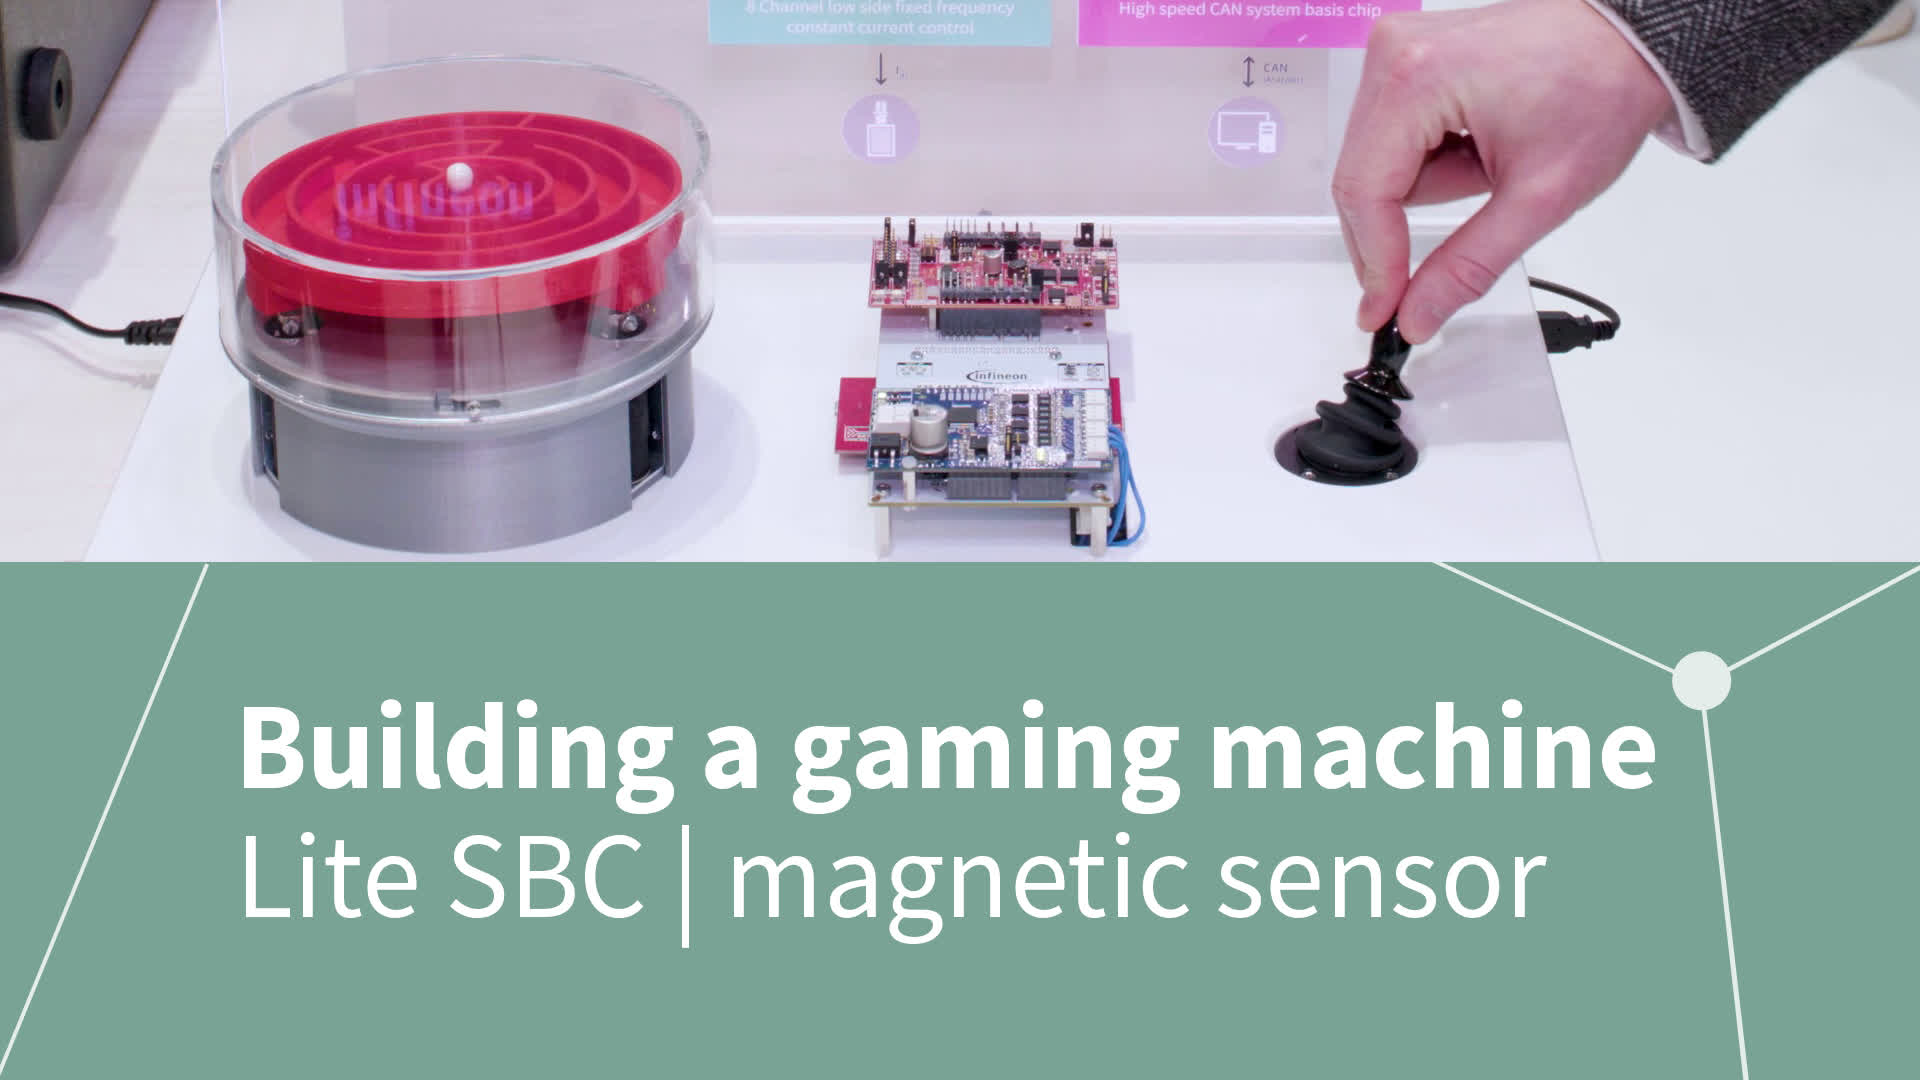 Building a gaming machine with Infineon semiconductors